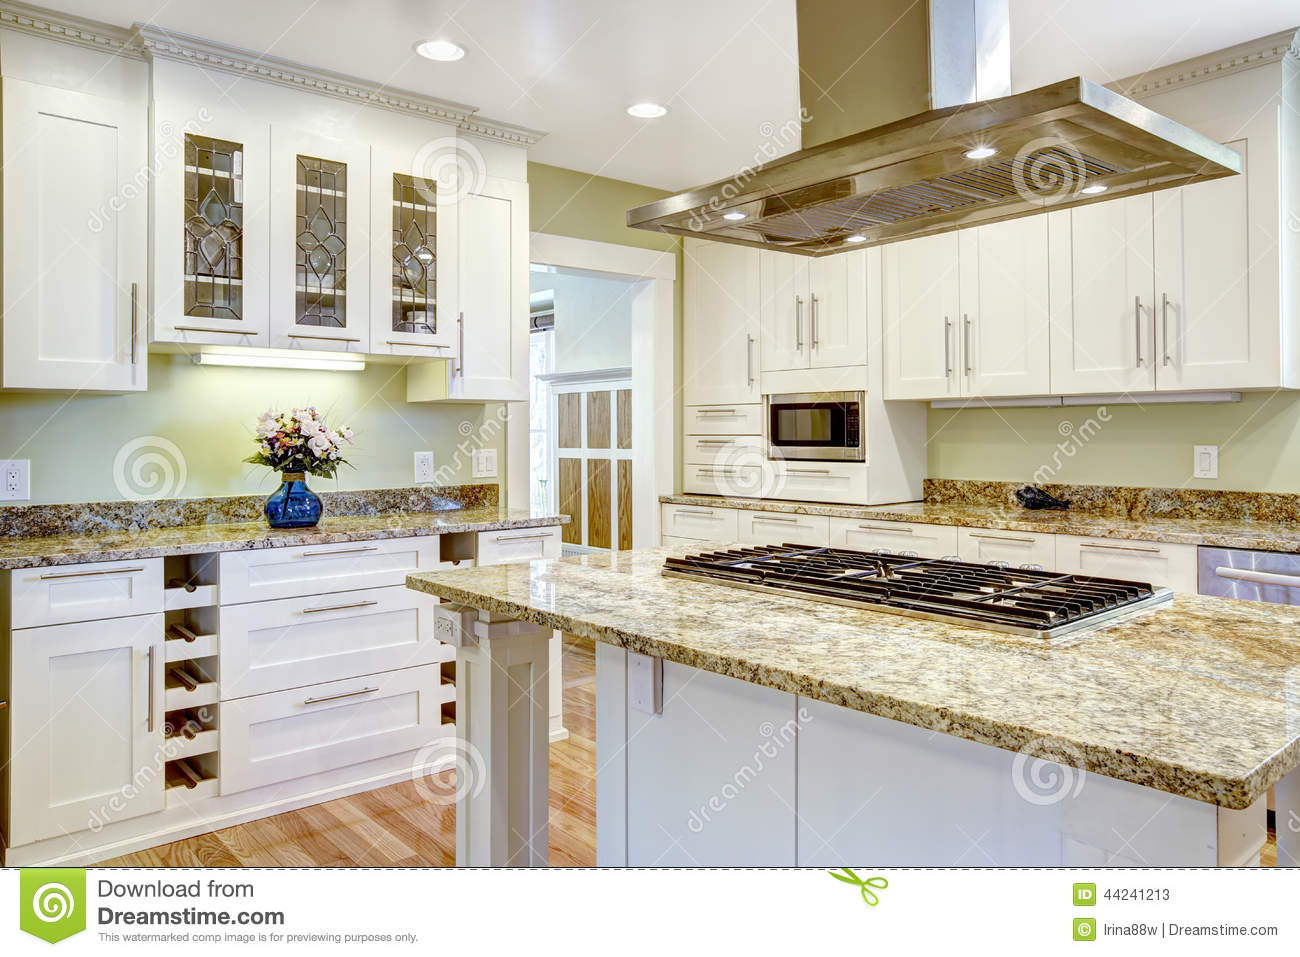 kitchen island stove companies that spray paint cabinets with built in granite top and hood stock image